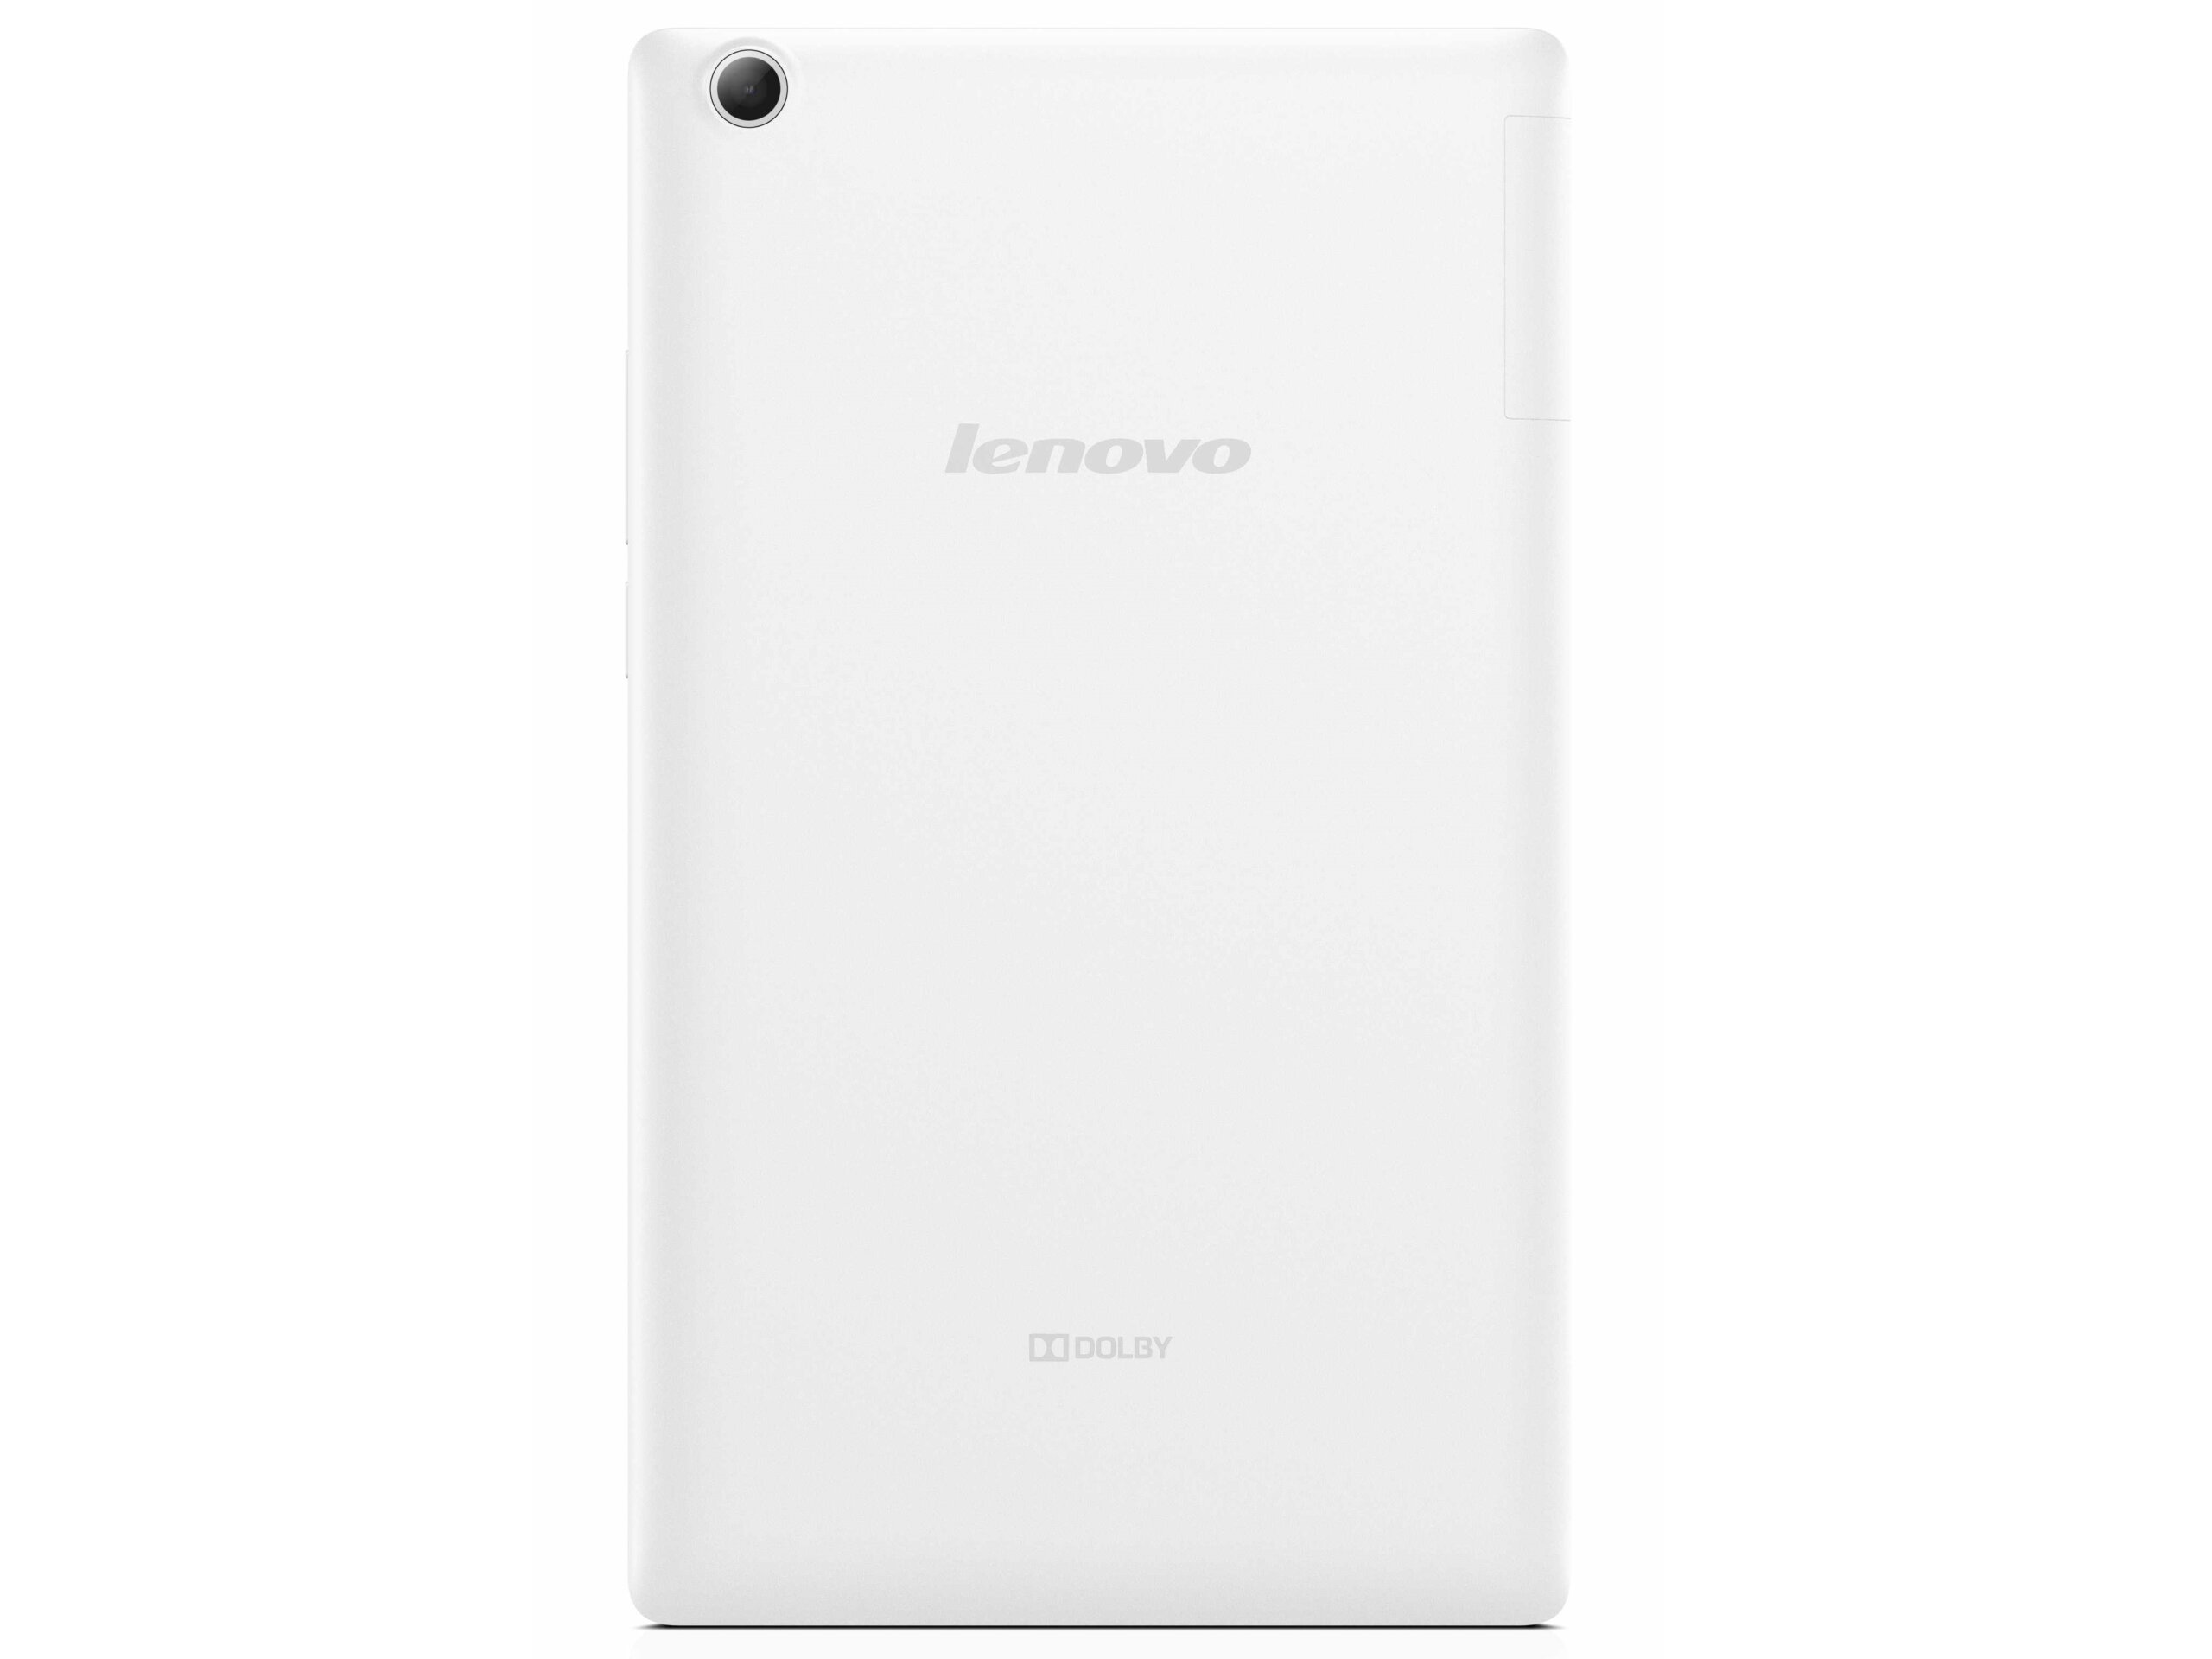 Lenovo TAB 2 A8 images and specs 5 scaled